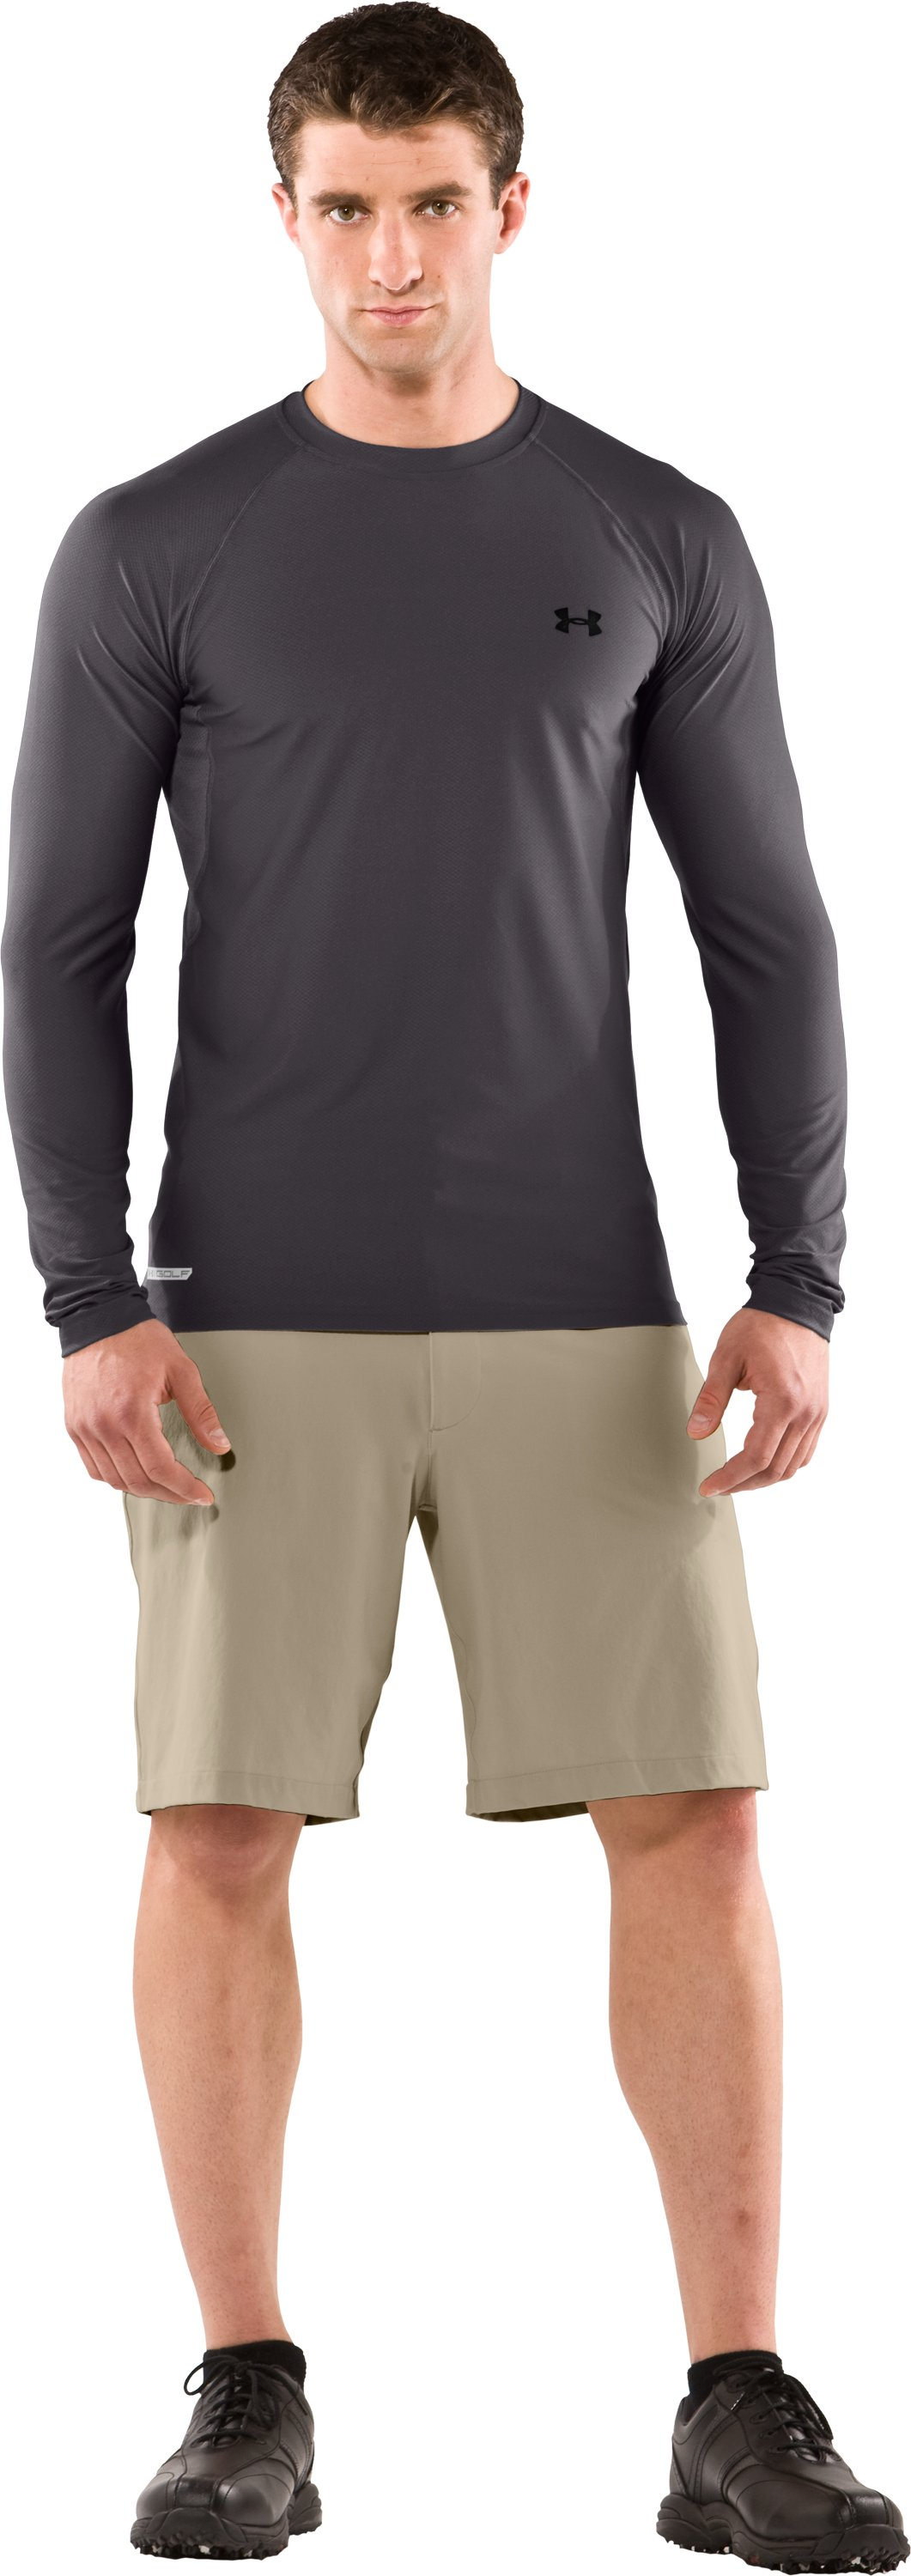 Men's HeatGear® Fitted Long Sleeve Layering Golf Shirt, Concrete, Front